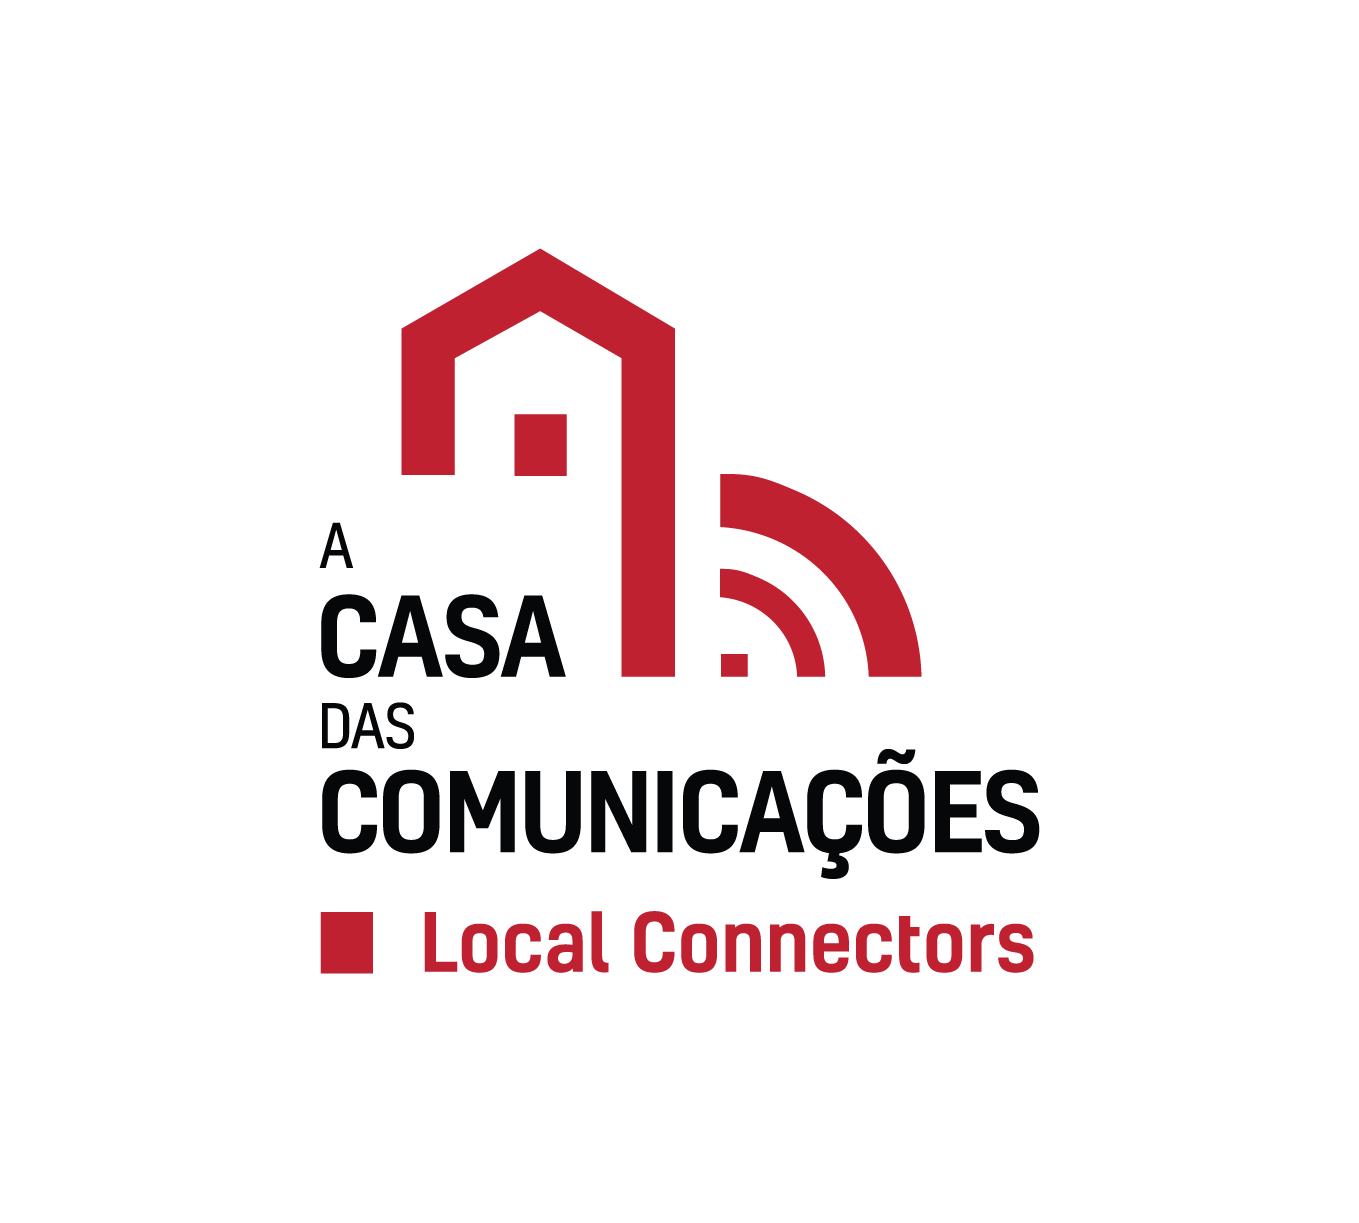 A Casa das Comunicações - Local Connectors